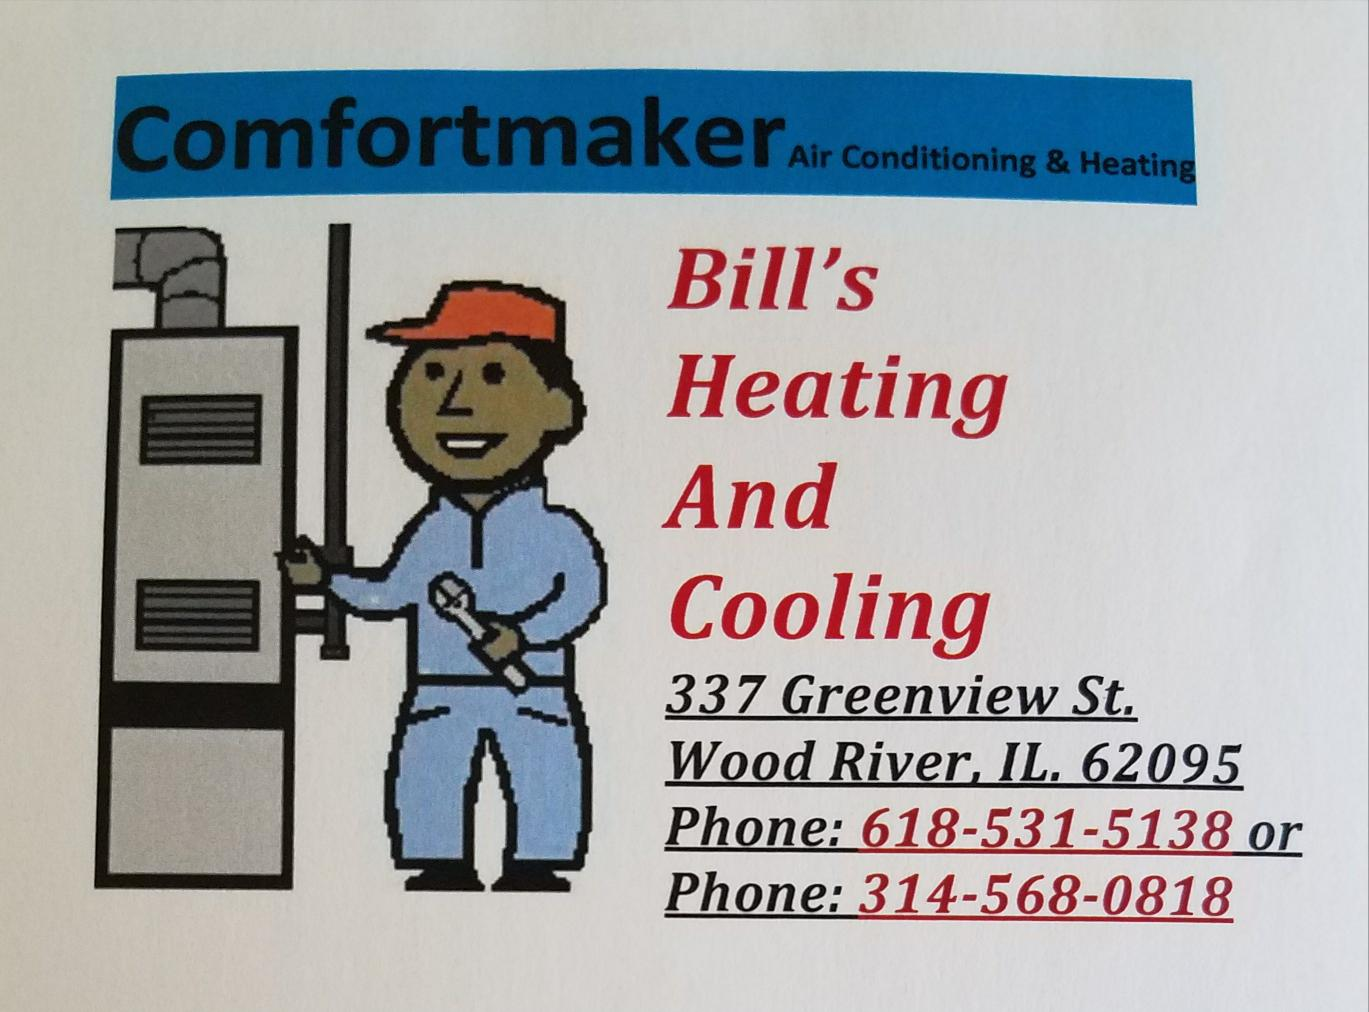 Bill's Heating and Cooling